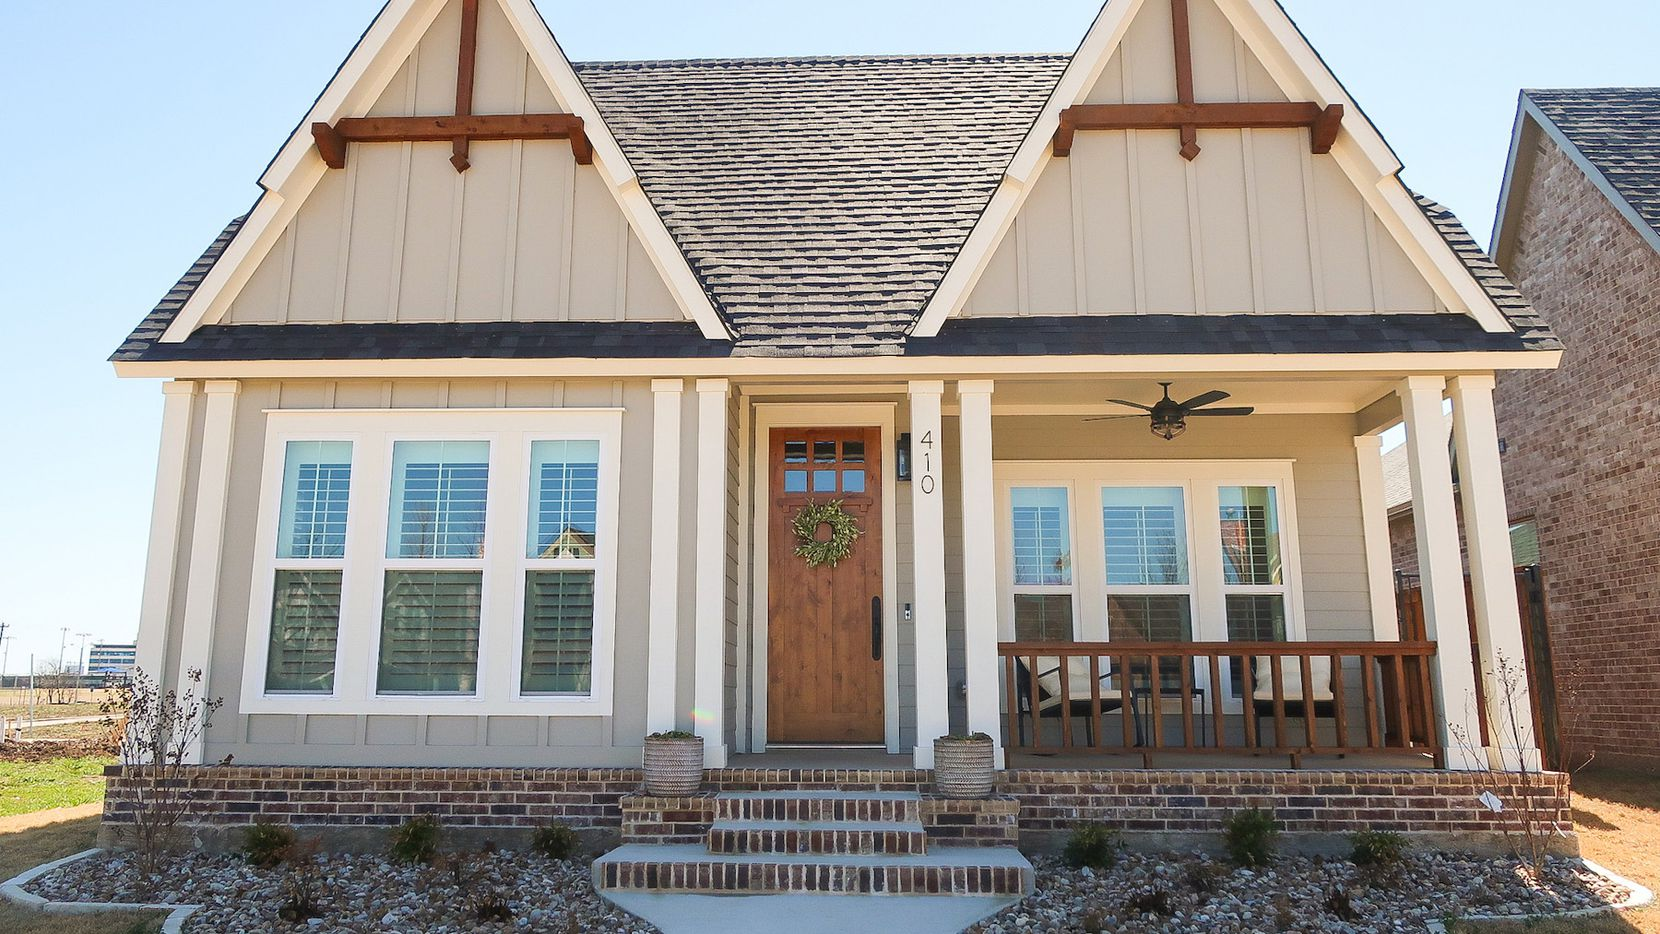 This cottage, presented by LIV Design + Build, is in the mixed-use Midtowne community of Midlothian.